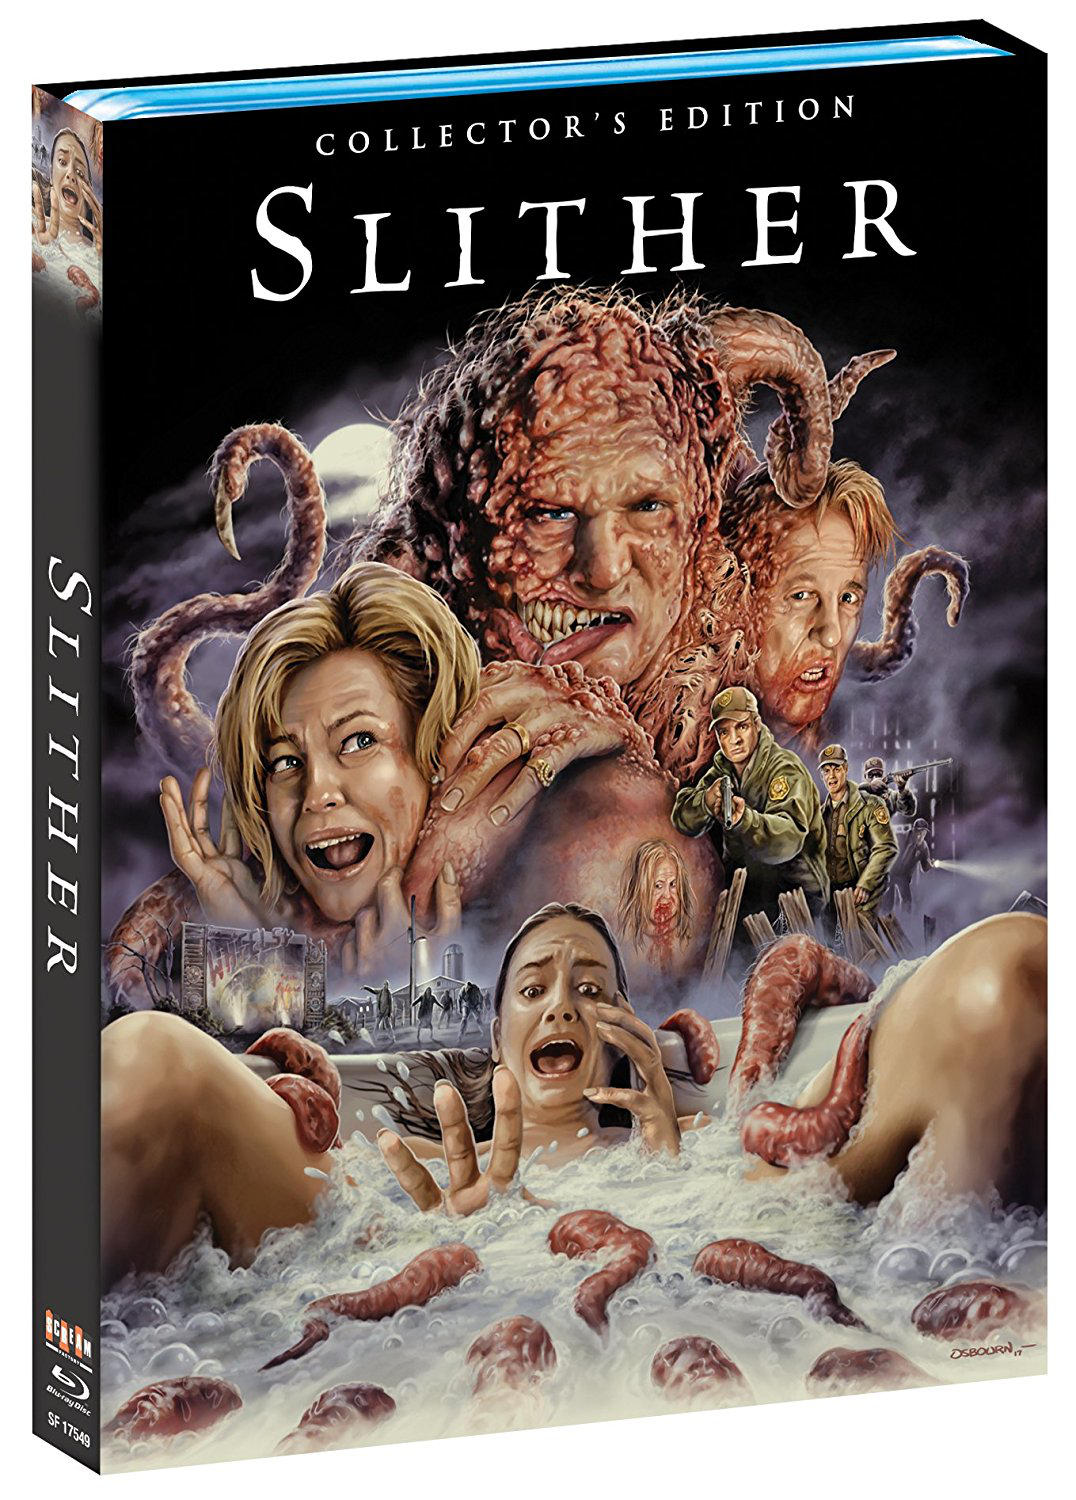 Fans Of 'Slither' Will Want To Check Out This New Collector's Edition!